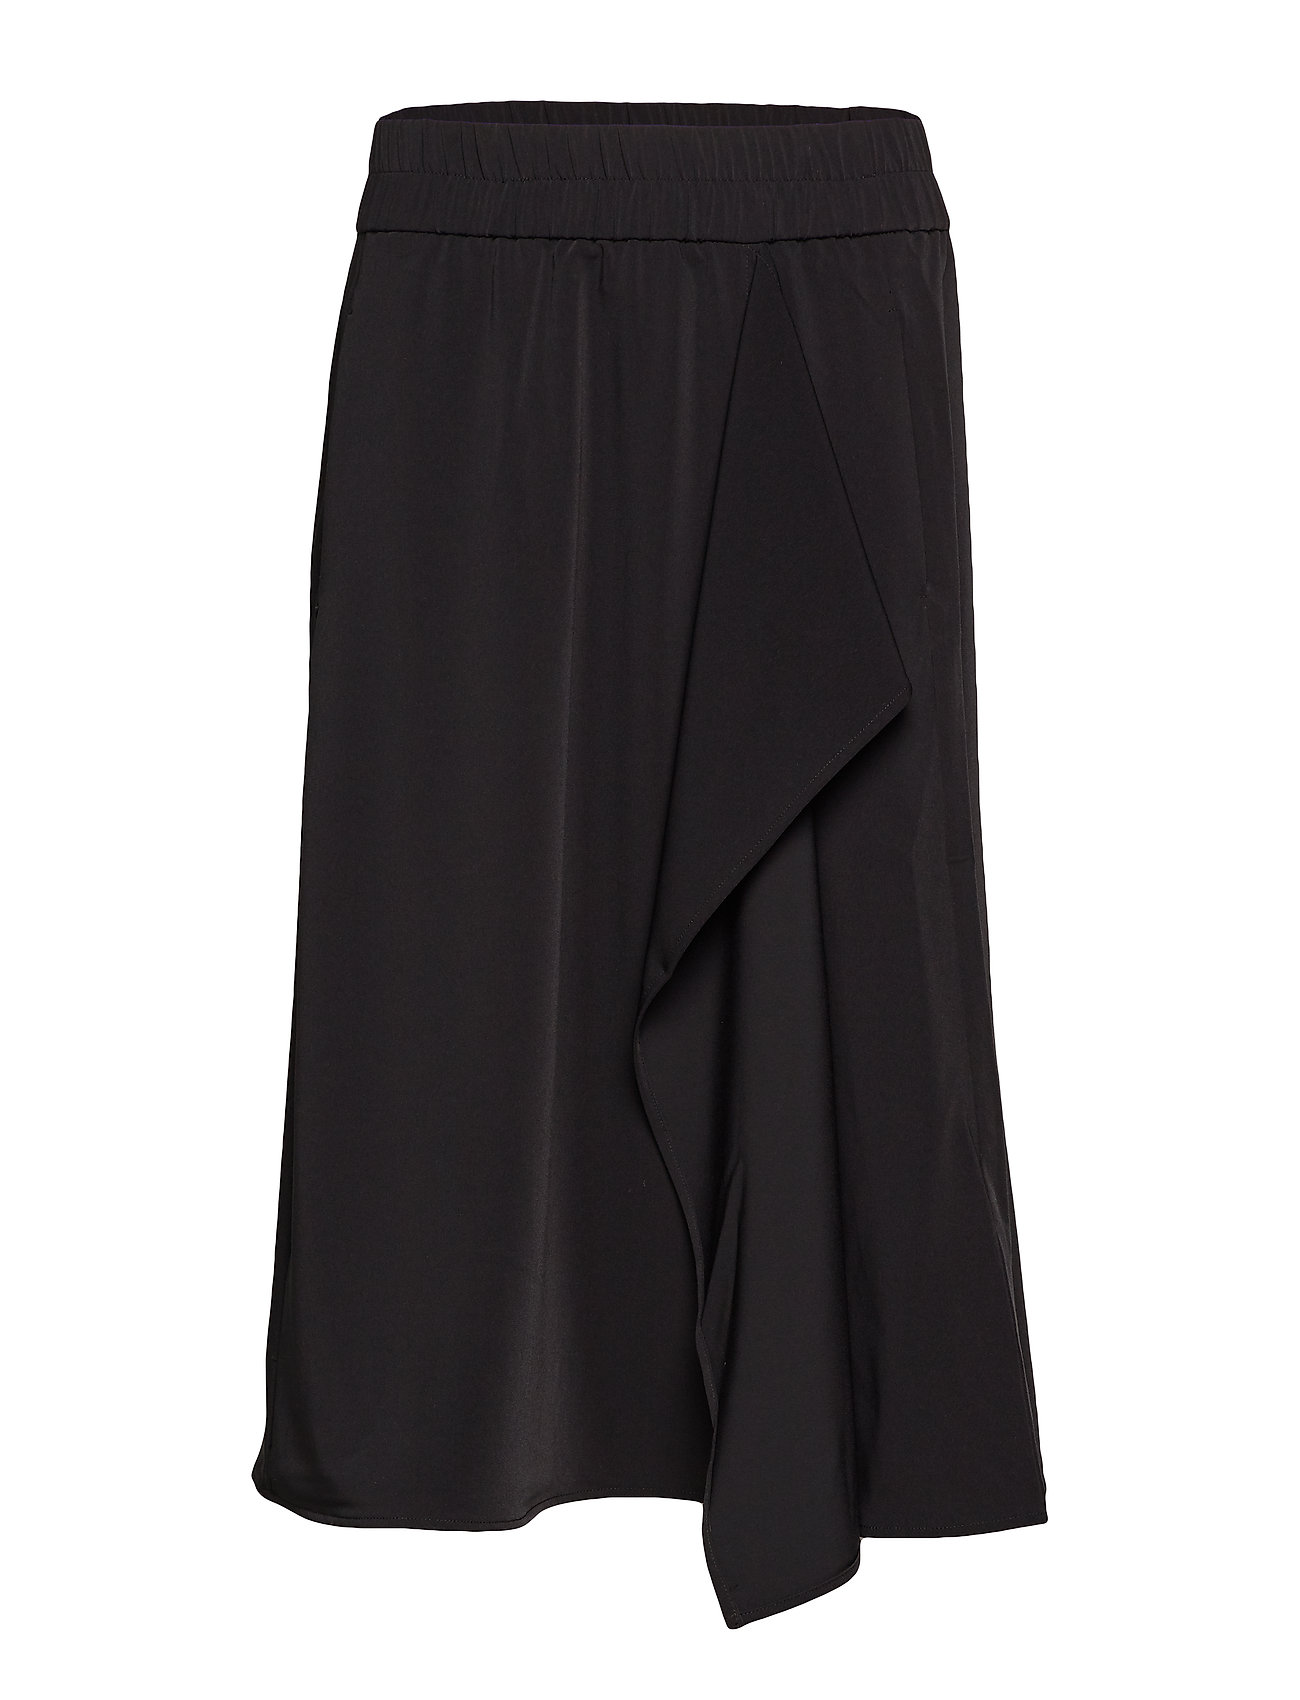 SkirtblackInwear SkirtblackInwear Abana Abana Abana SkirtblackInwear Abana SkirtblackInwear SkirtblackInwear Abana SkirtblackInwear SkirtblackInwear SkirtblackInwear Abana Abana Abana RjLc354qA